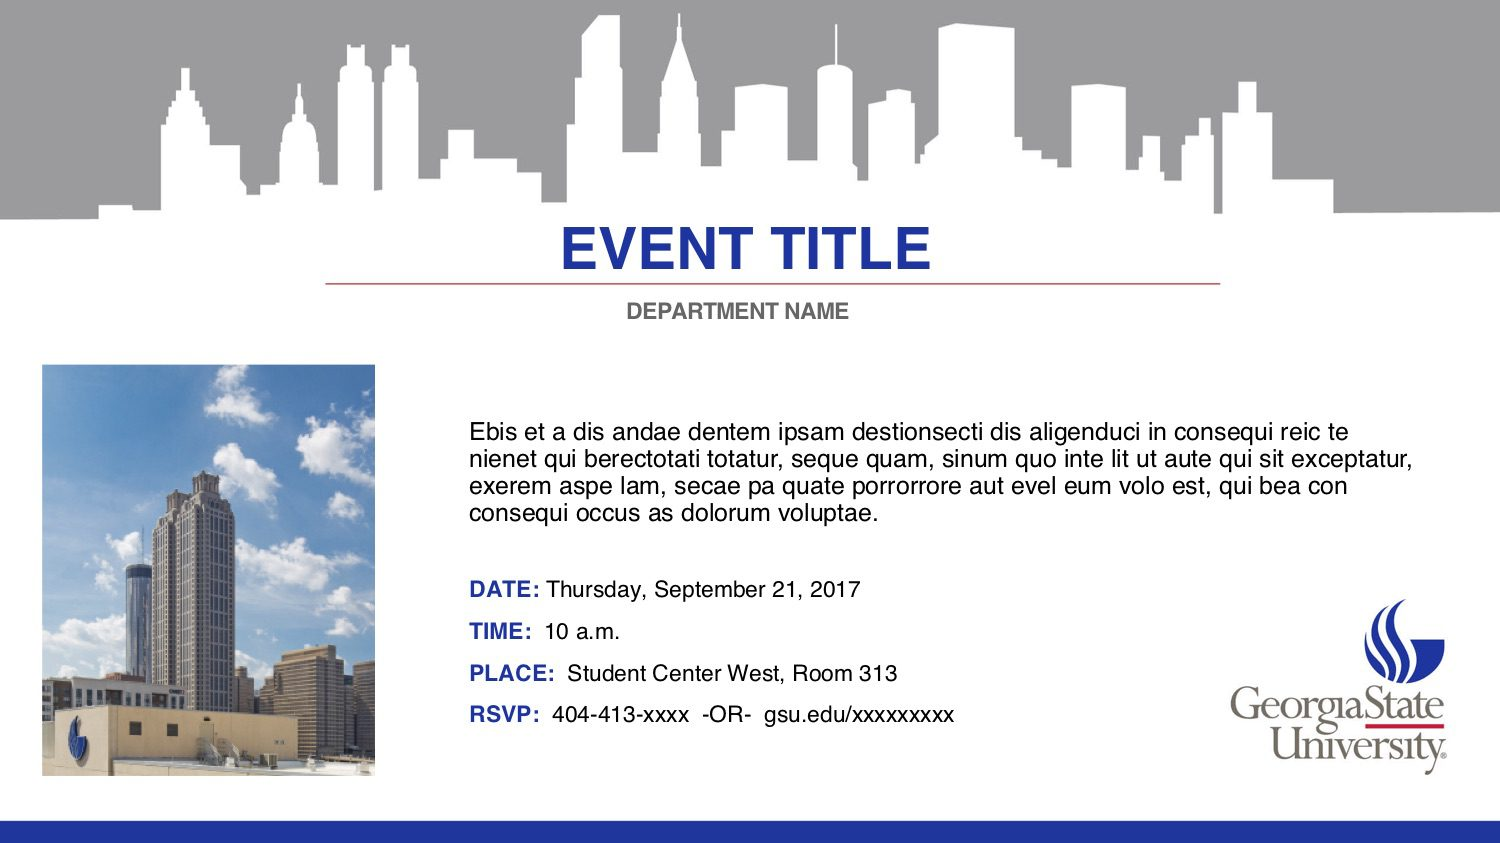 Digital sign template with top skyline silhouette, image left, title, description and event info righrt